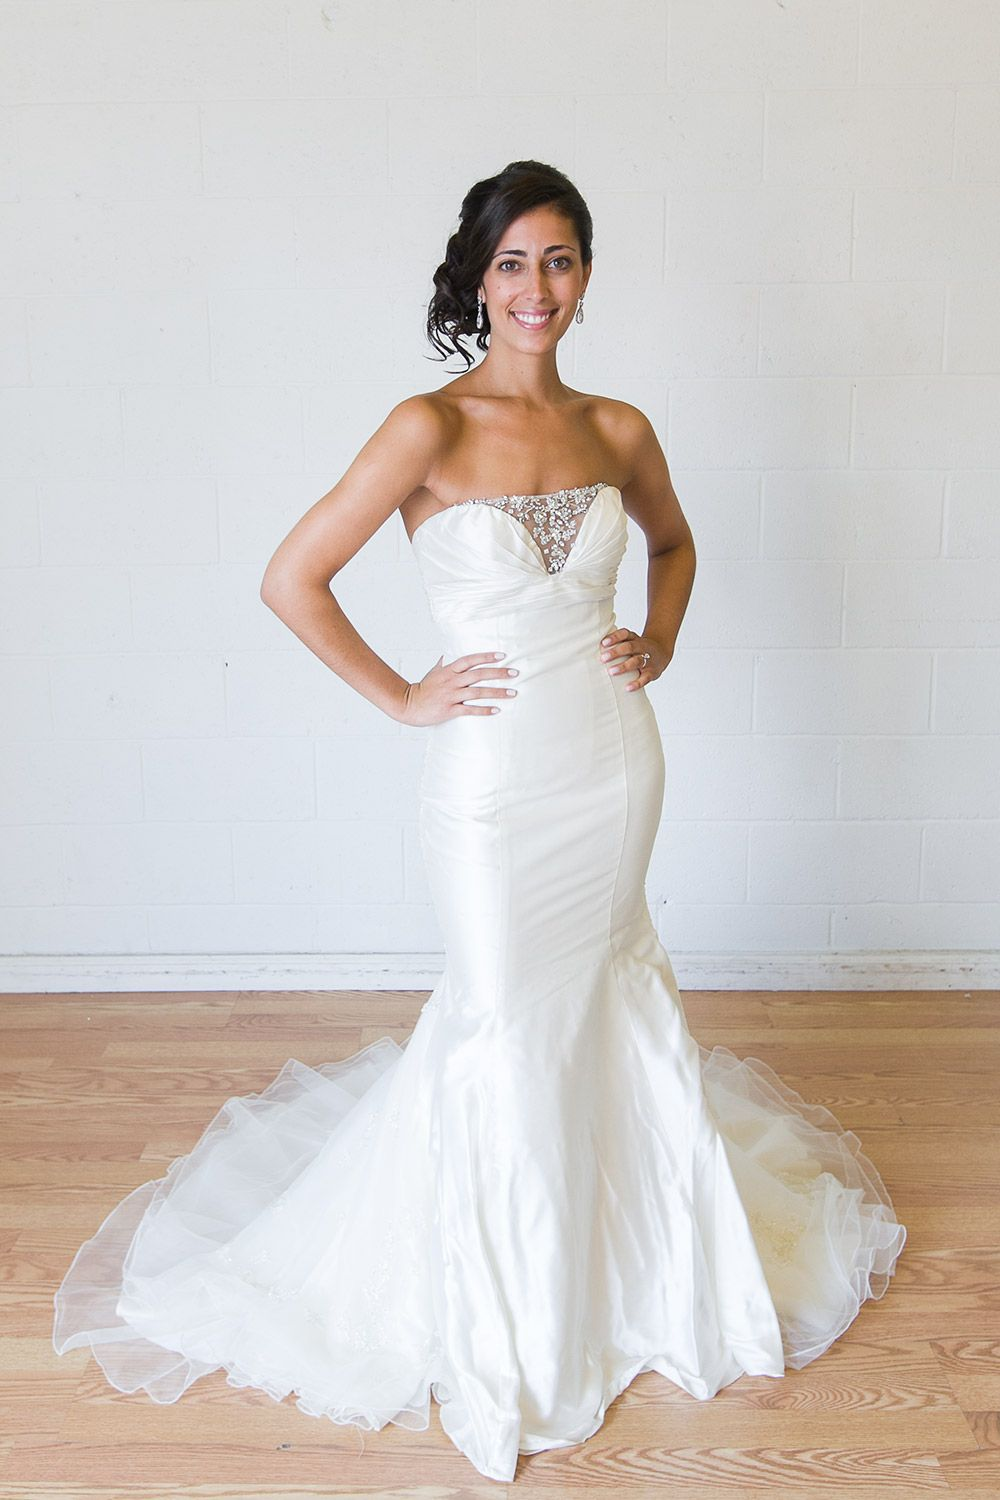 The Pros And Cons Of A Wedding Dress Rental Popular Wedding Dresses Rental Wedding Dresses Rent Wedding Dress